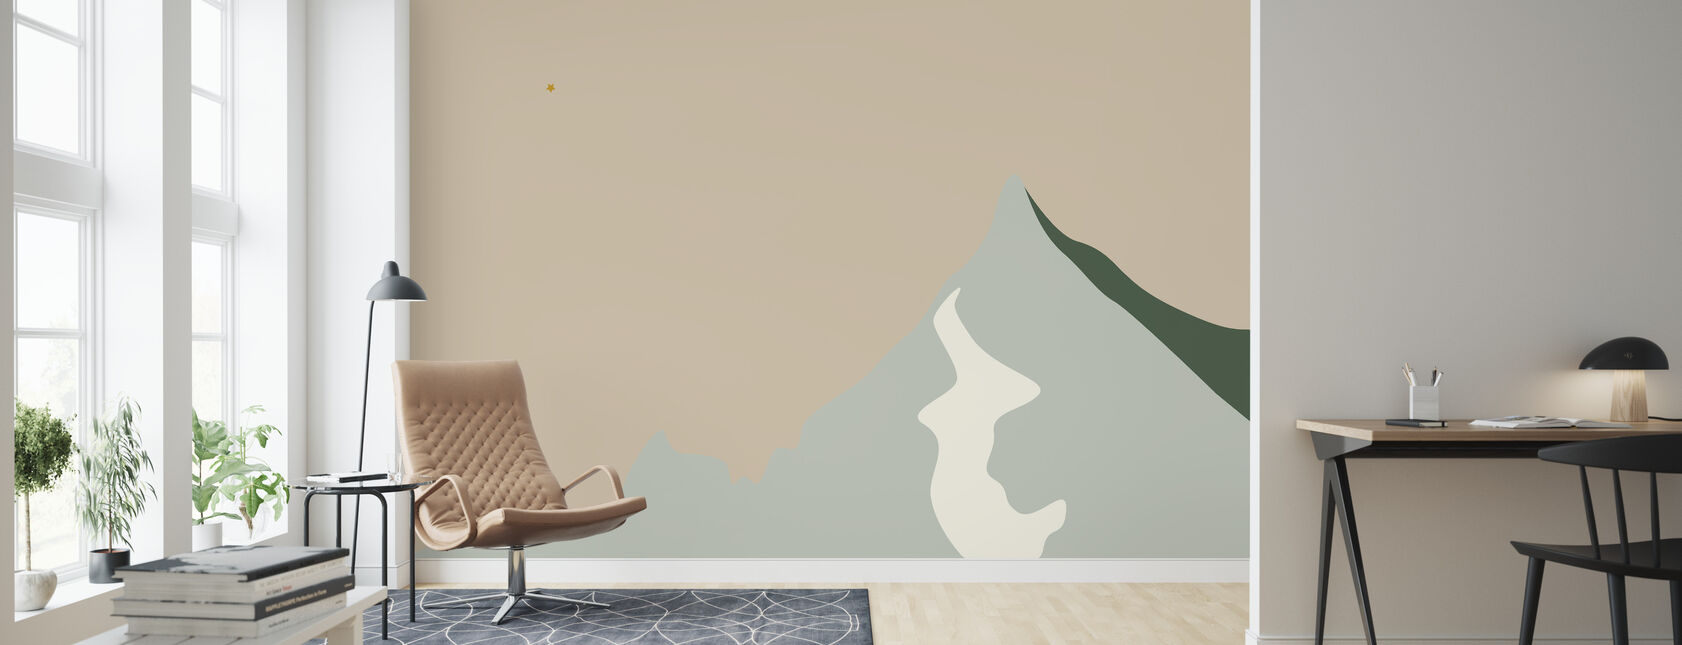 The summit - Wallpaper - Living Room